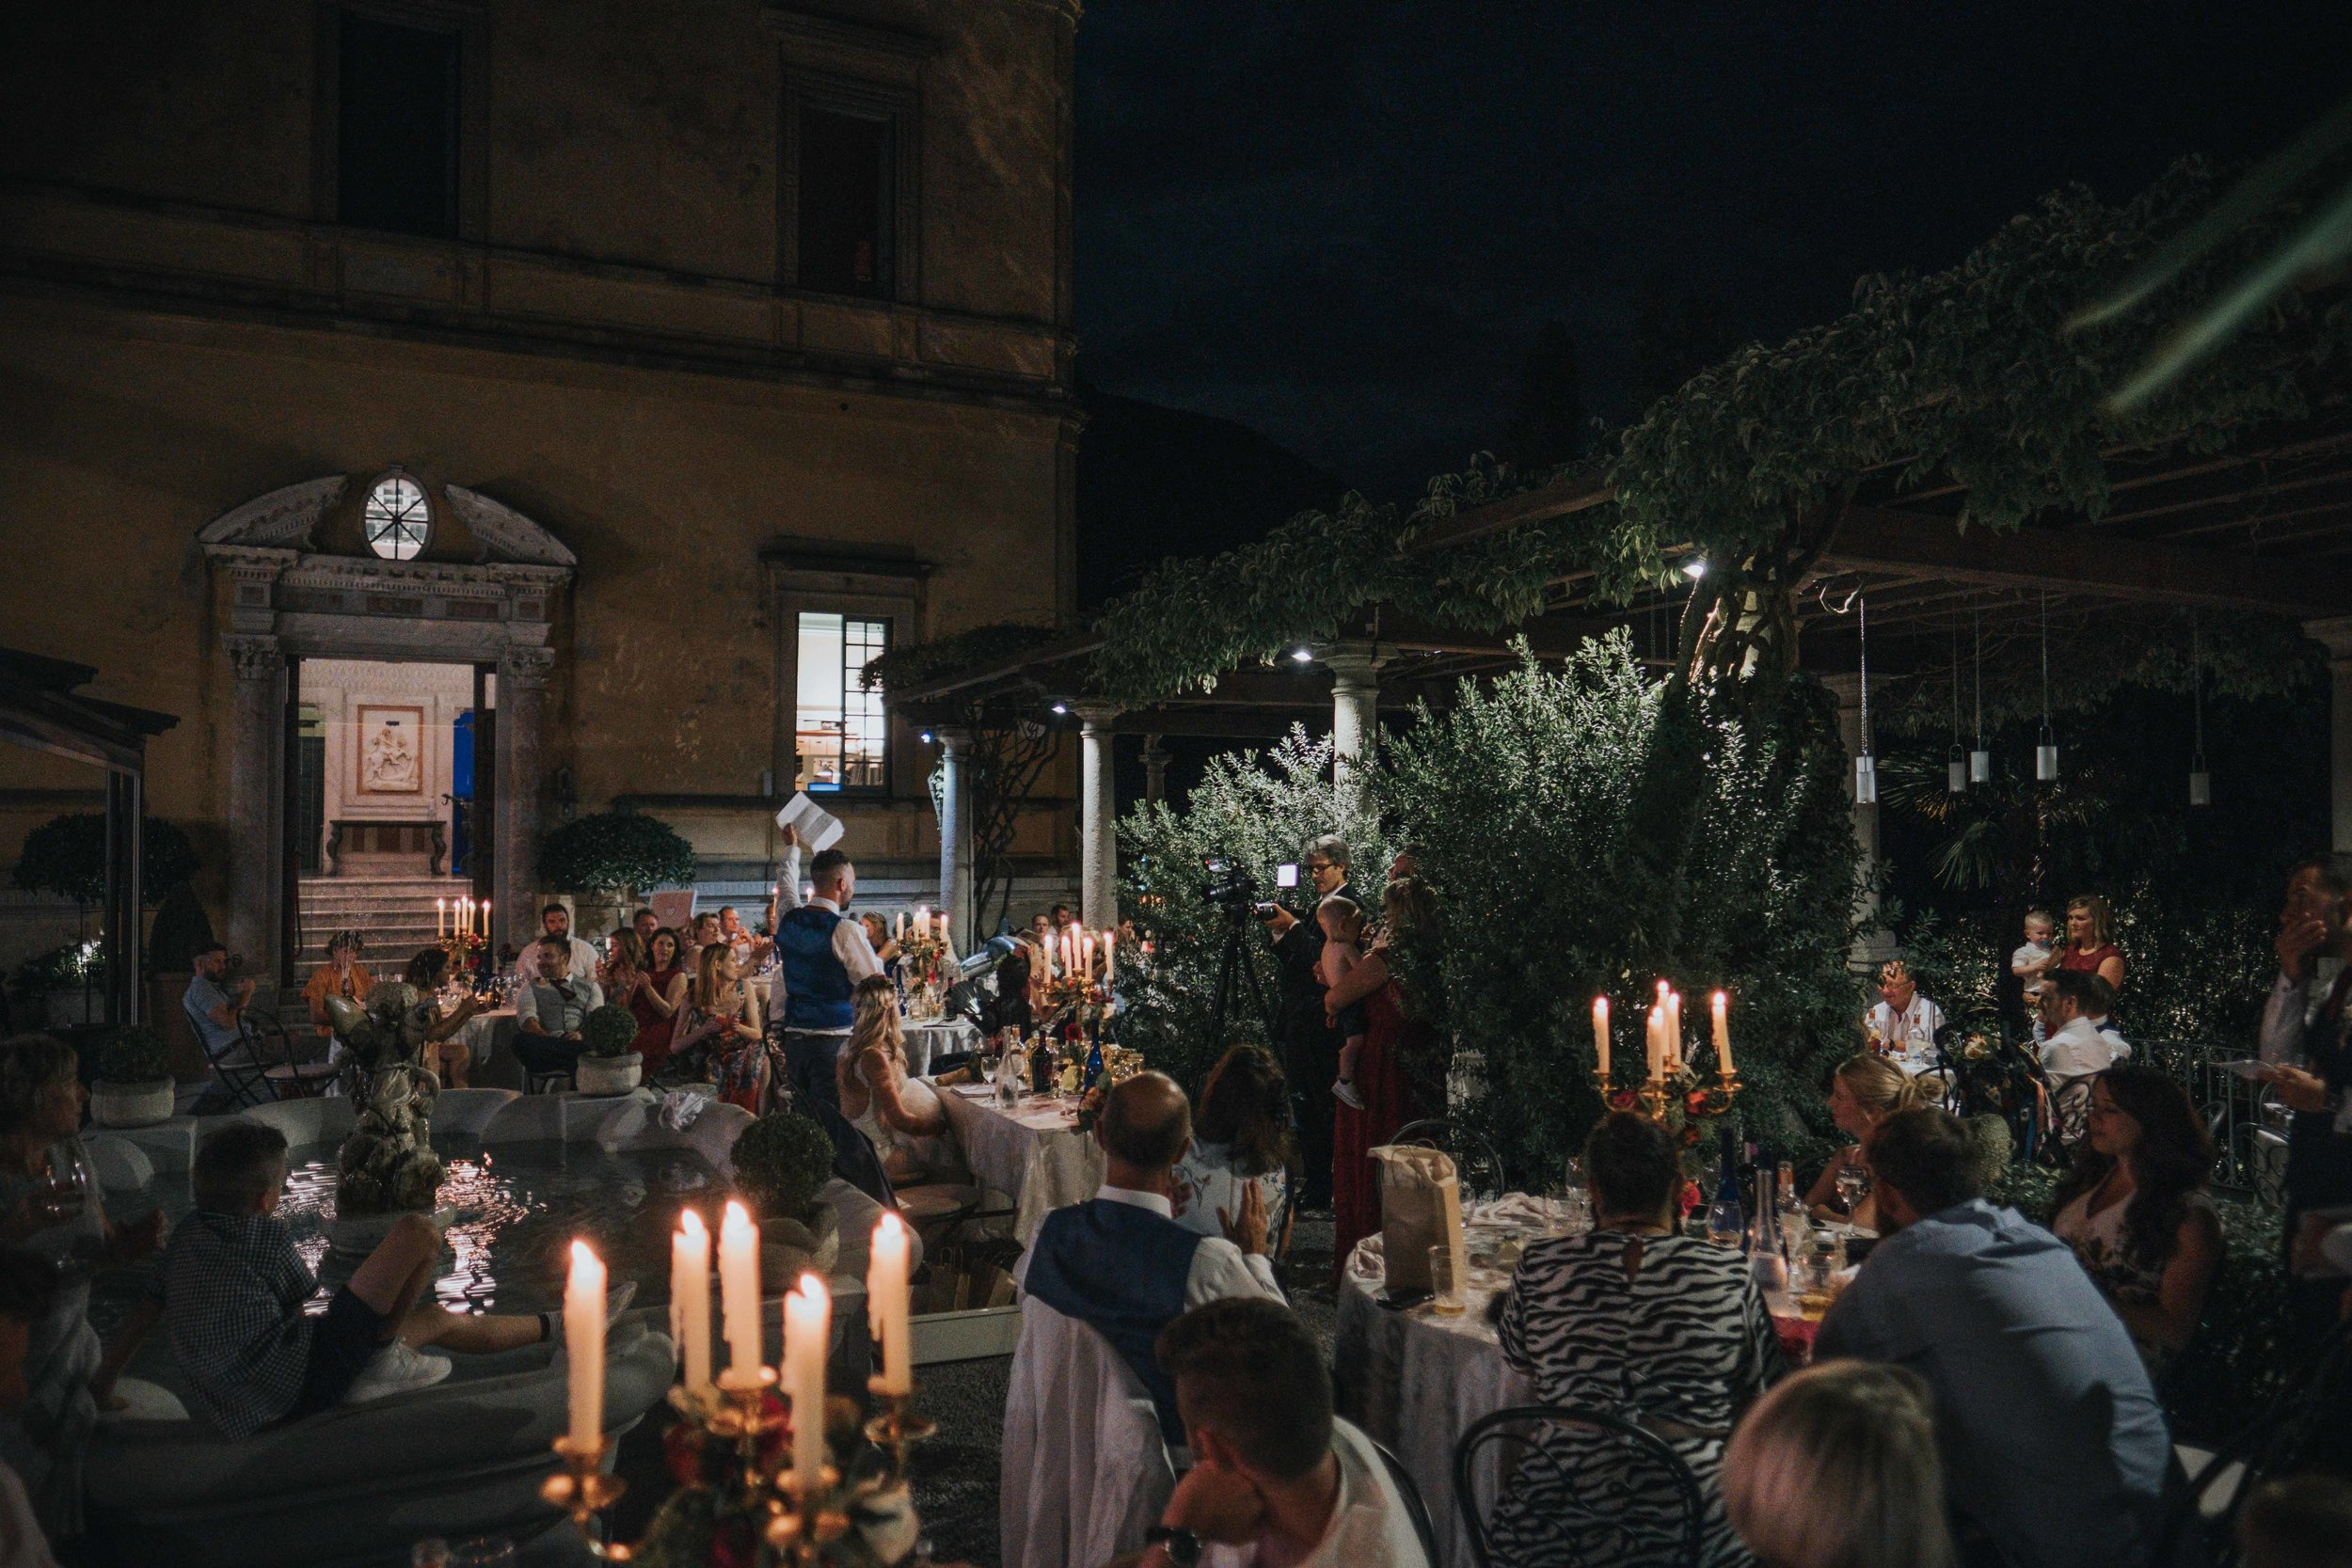 Laco Como Italy destination wedding photographer cheshire north west england documentry photography (93 of 117).jpg